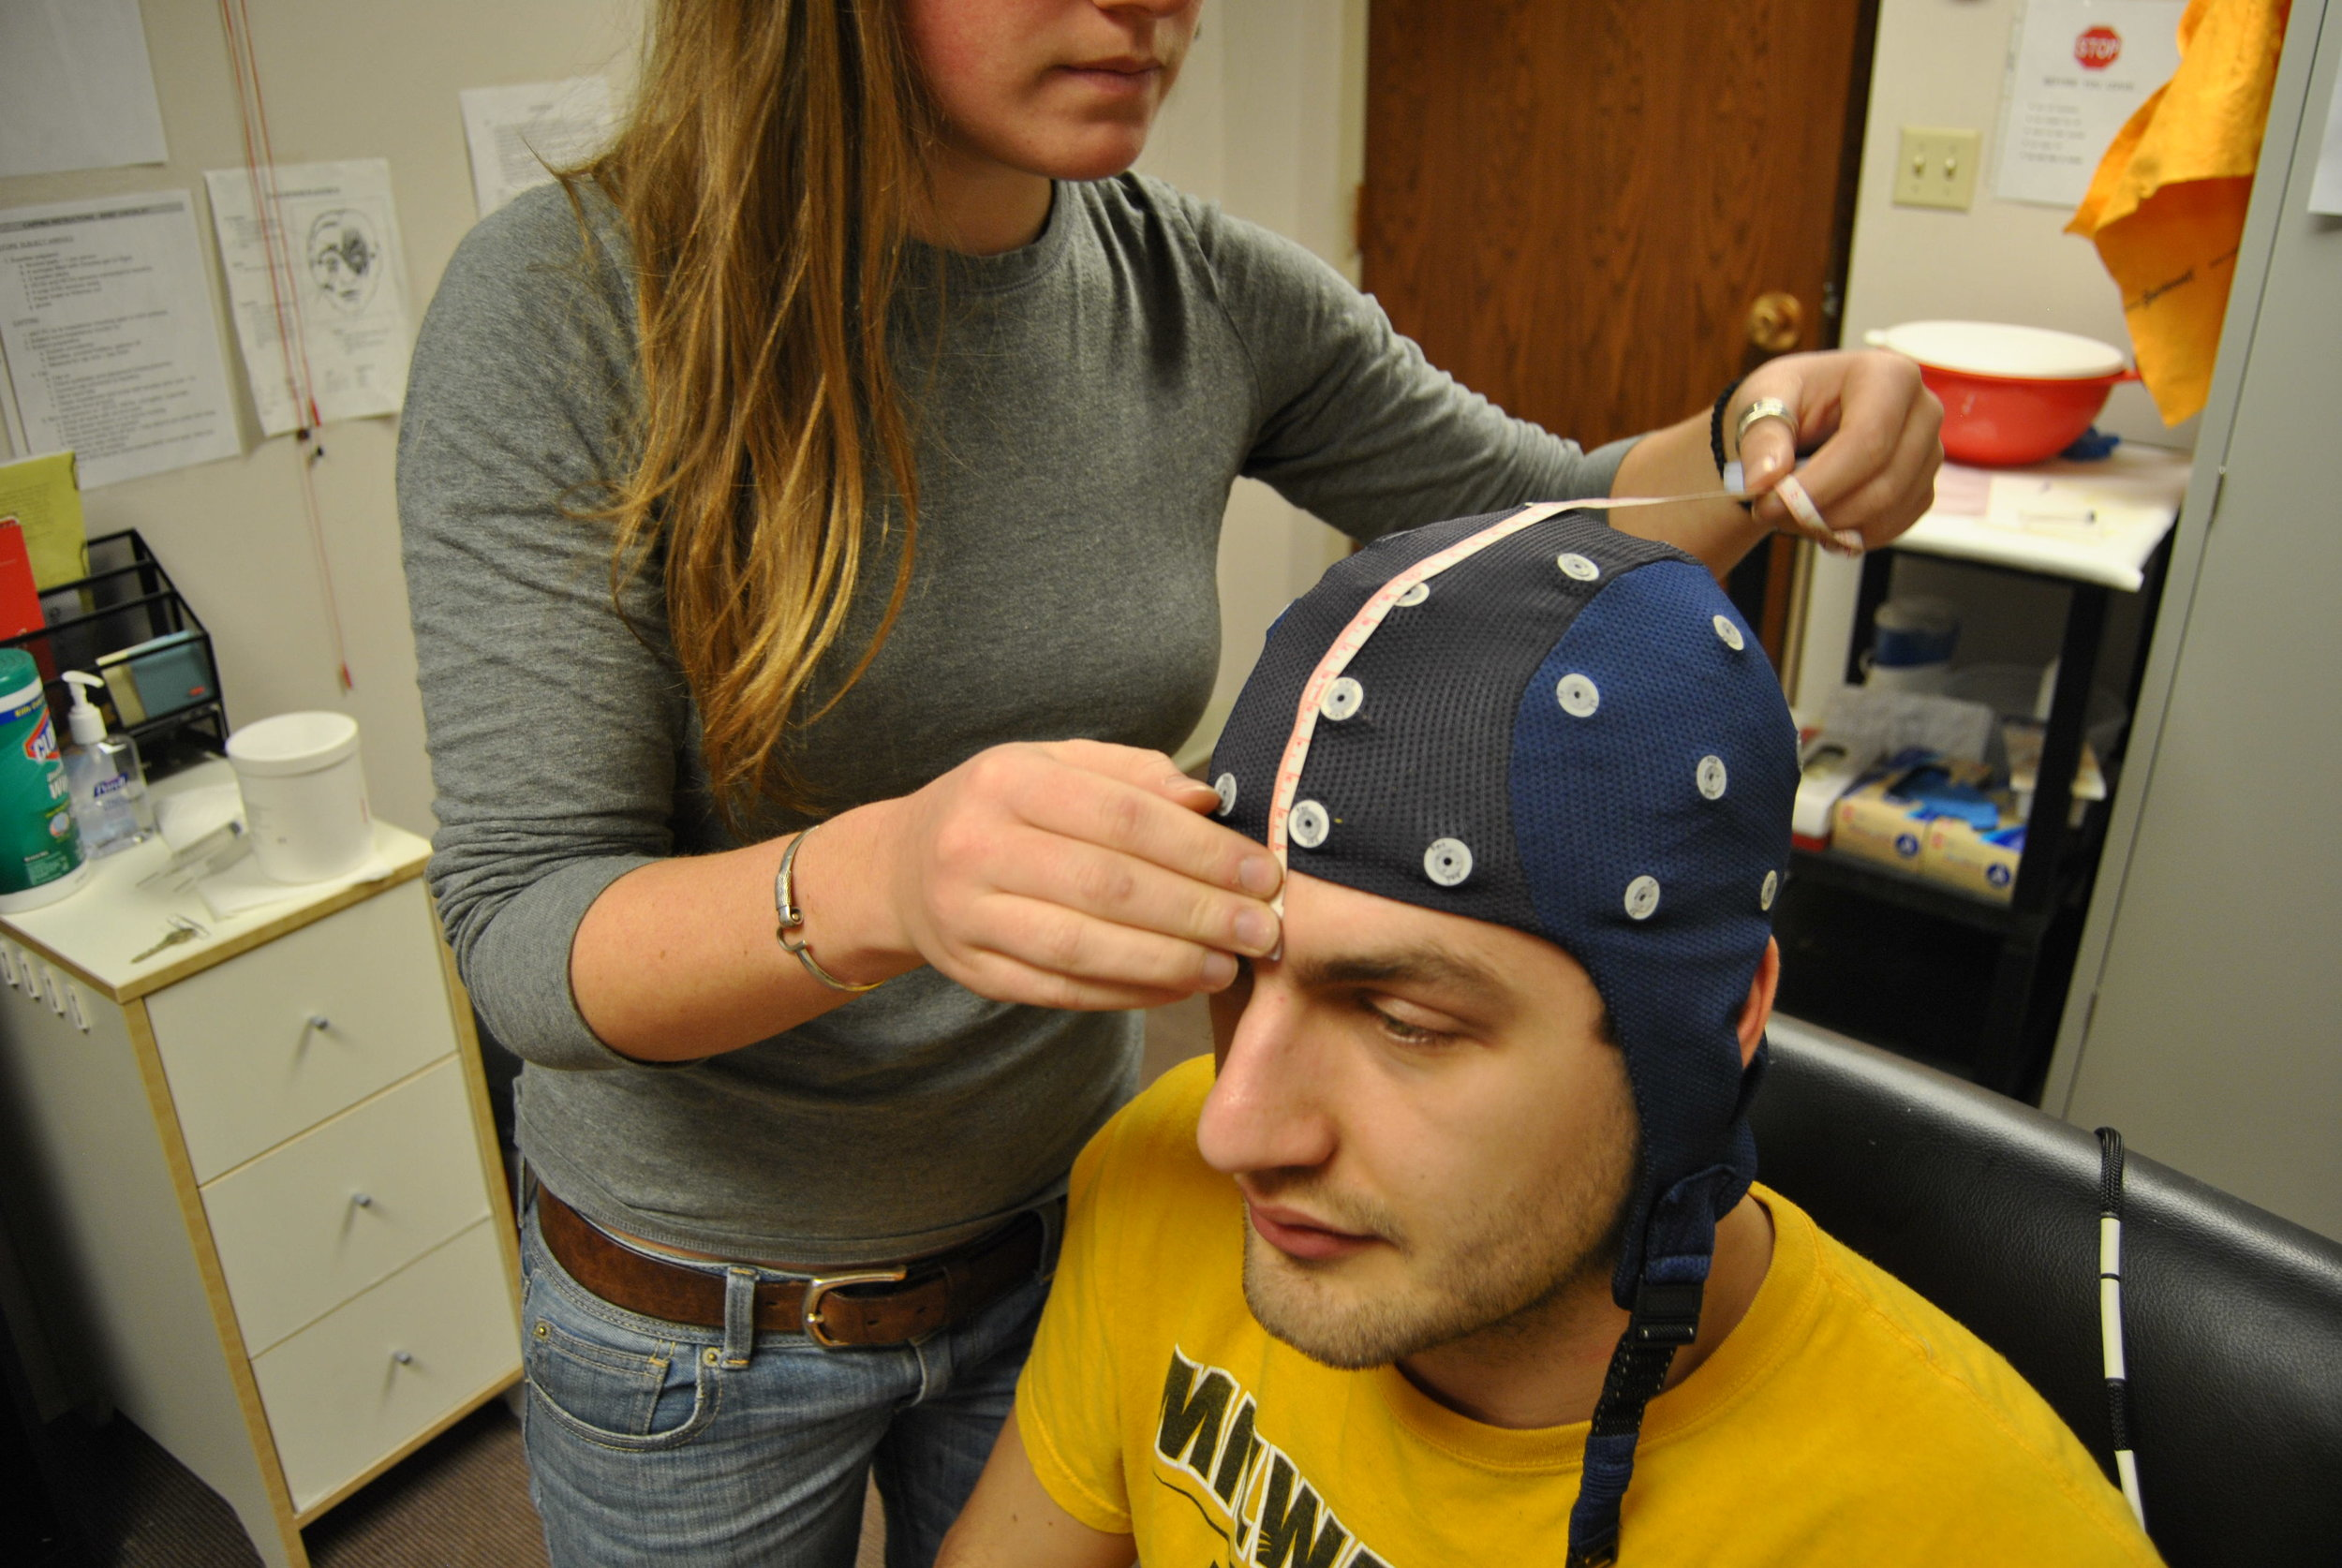 Preparing the EEG Cap